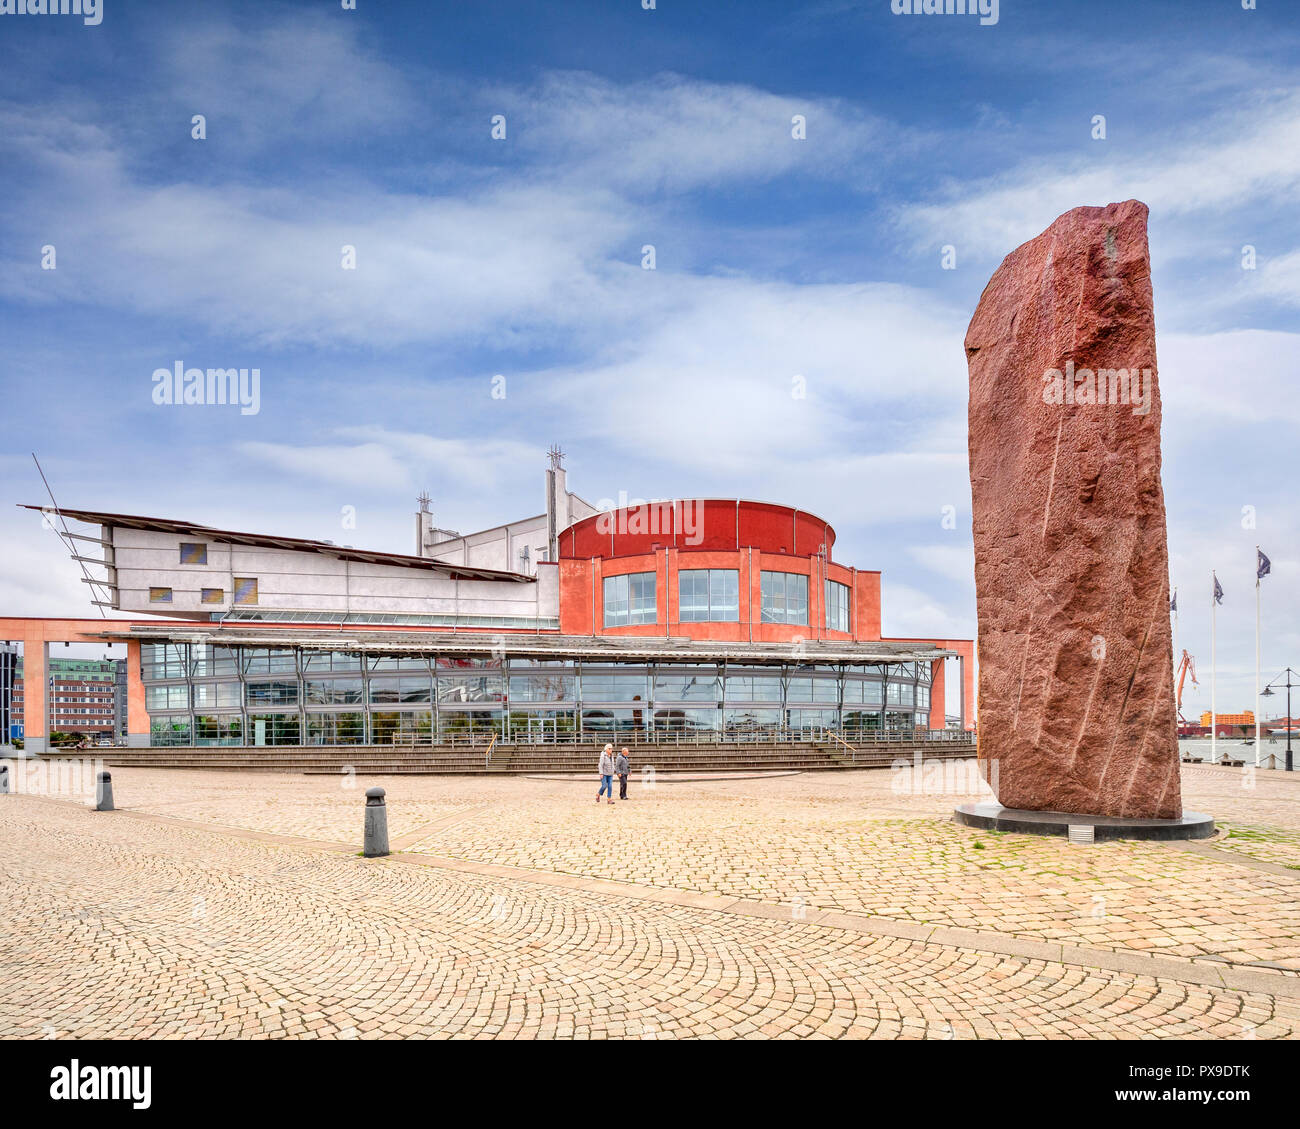 14 September 2018: Gothenburg, Sweden - Gothenburg Opera House in the Lilla Bommen area of the harbour district, by architect Jan Izikowitz. - Stock Image